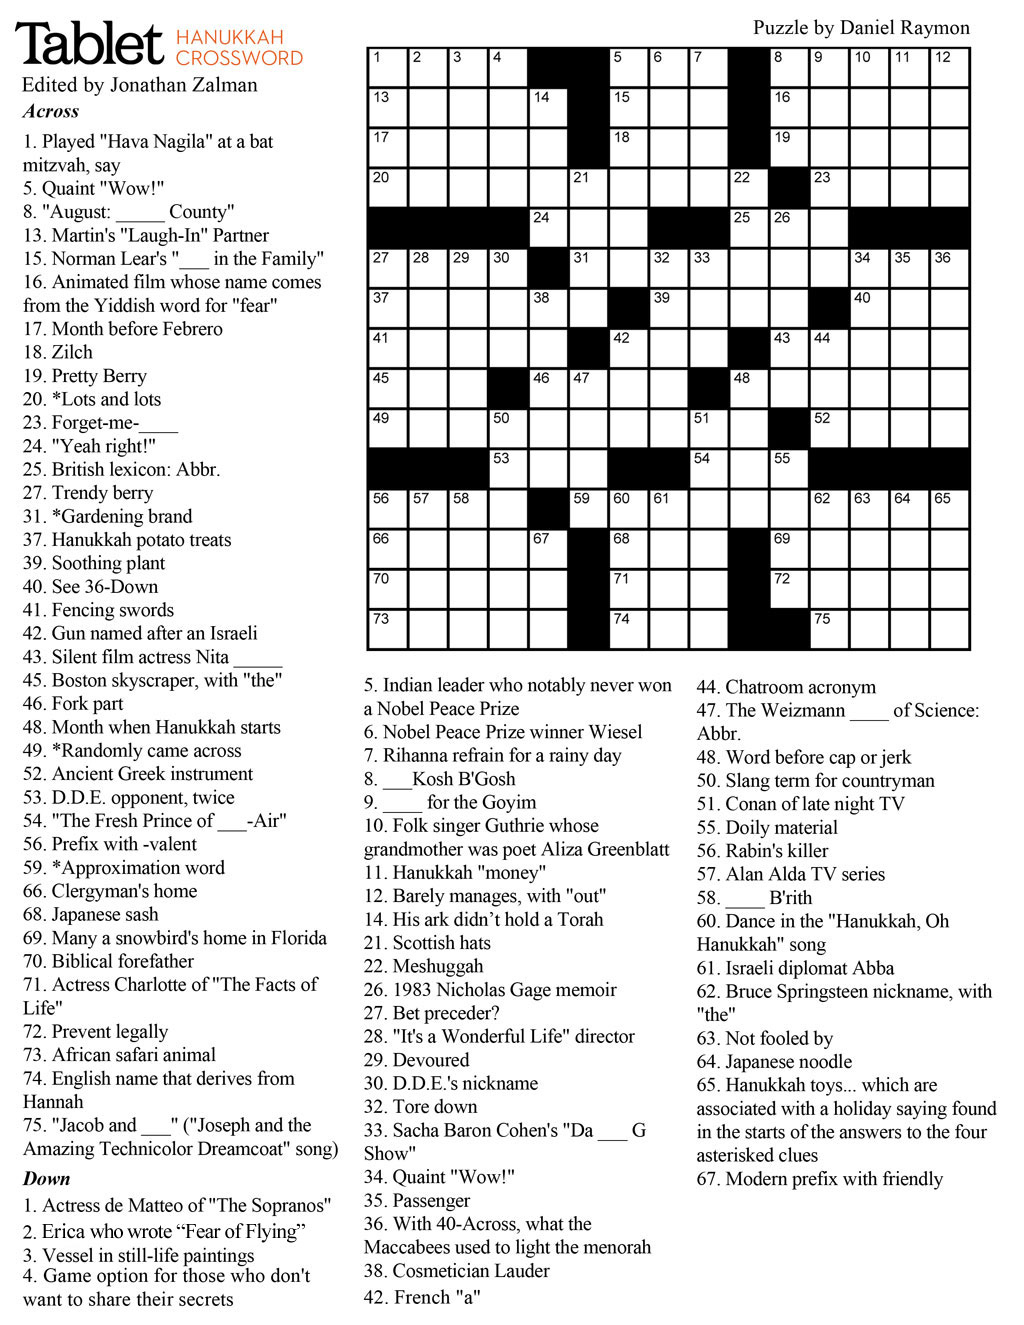 Wind Down With Our Hanukkah Crossword Puzzle! – Tablet Magazine - Picture Crossword Puzzles Printable